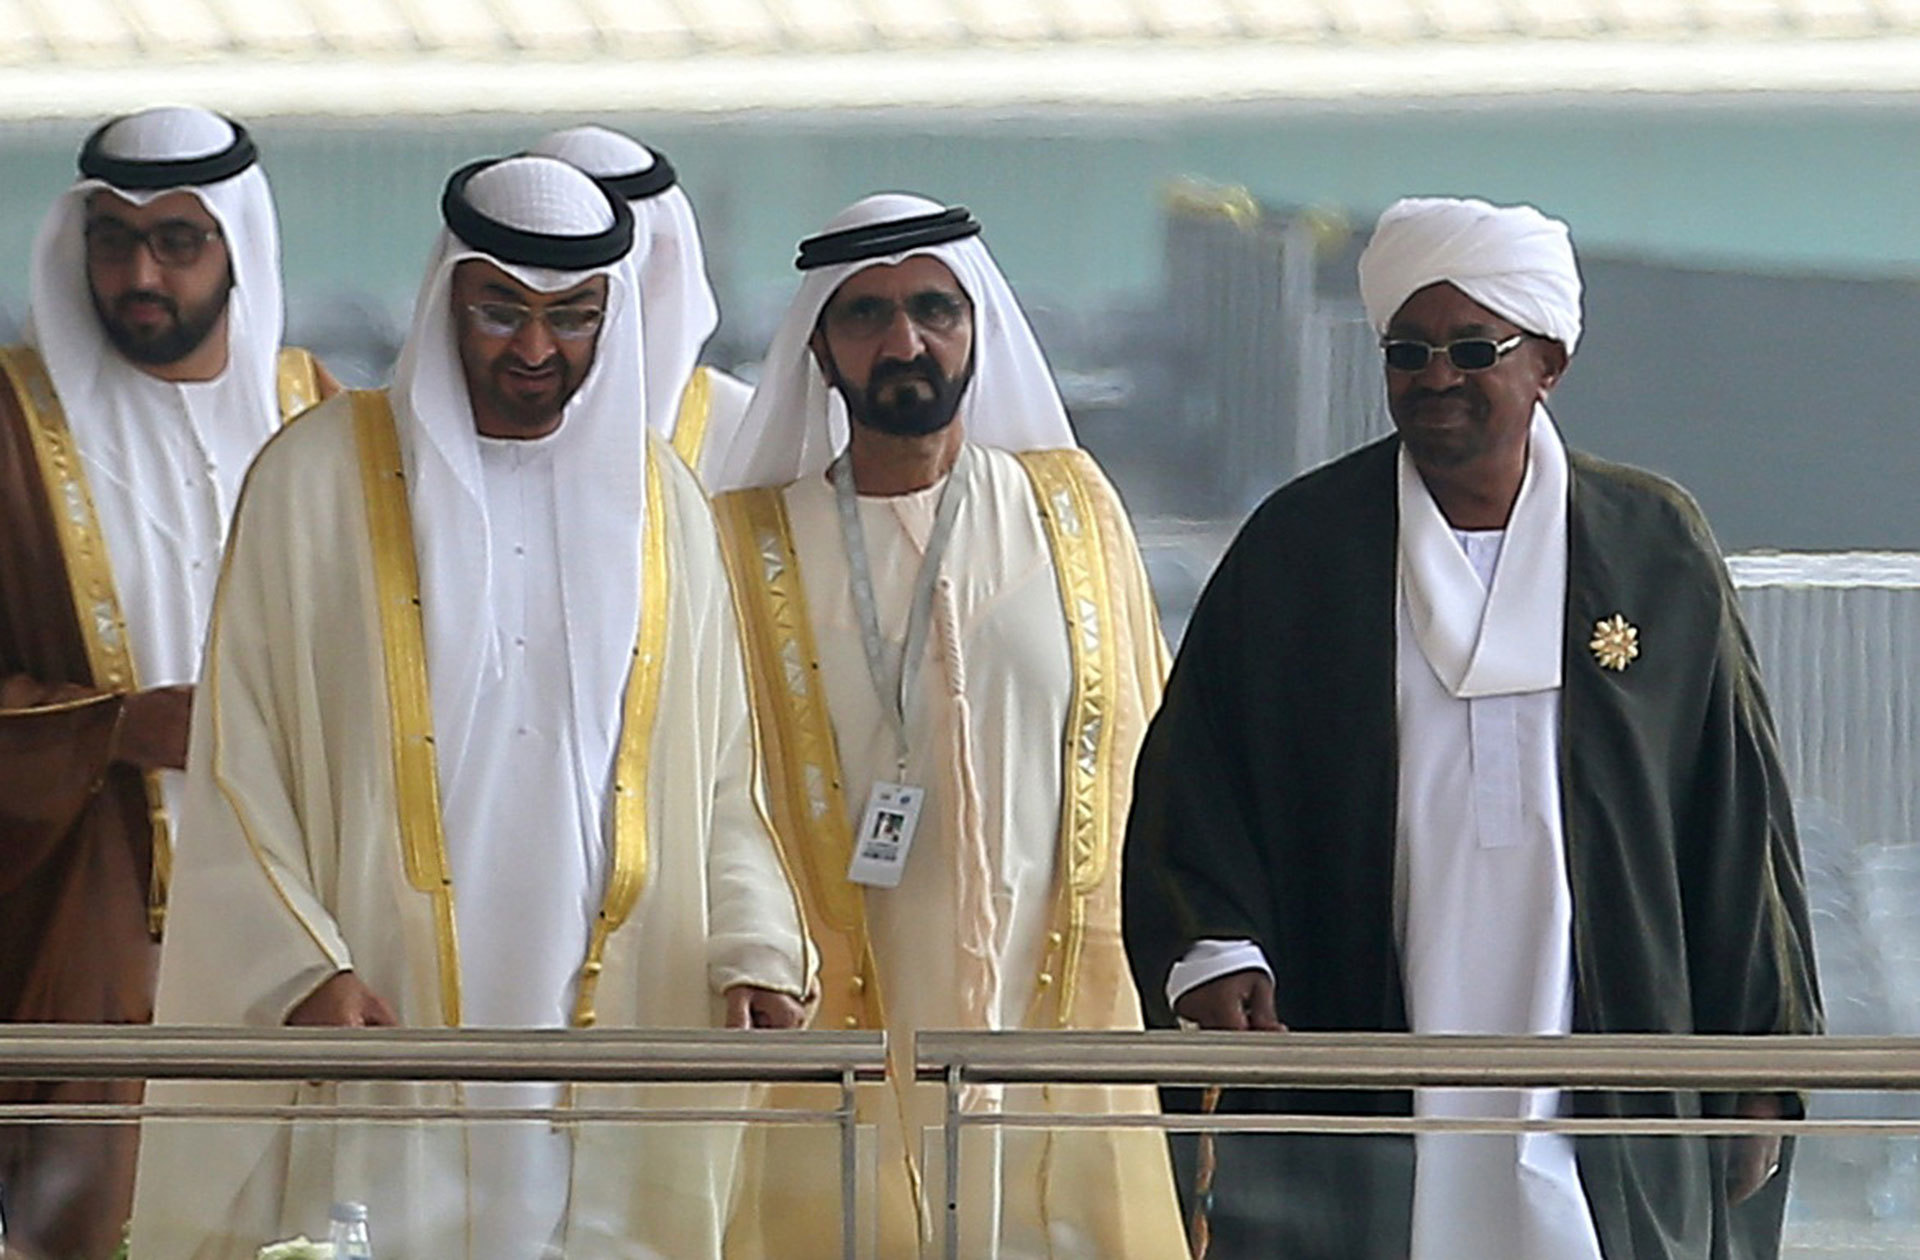 Abu Dhabi Crown Prince Sheikh Mohammed bin Zayed Al Nahyan (second from left) and Sudanese leader Bashir (right) attend a defence exhibition and conference in Abu Dhabi in February 2017. ─ Reuters